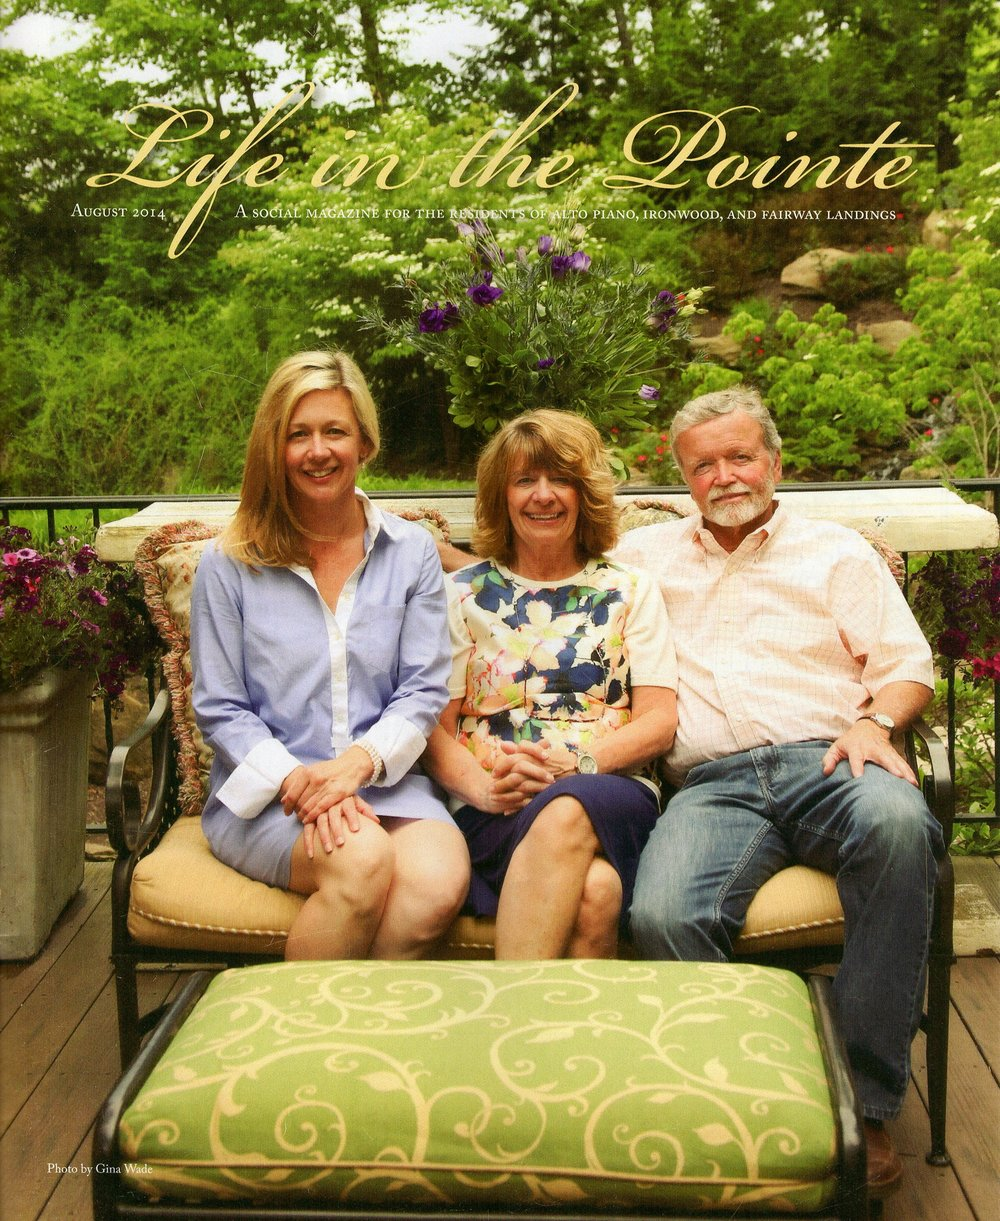 The Blackwood Group in PA Life in the Pointe